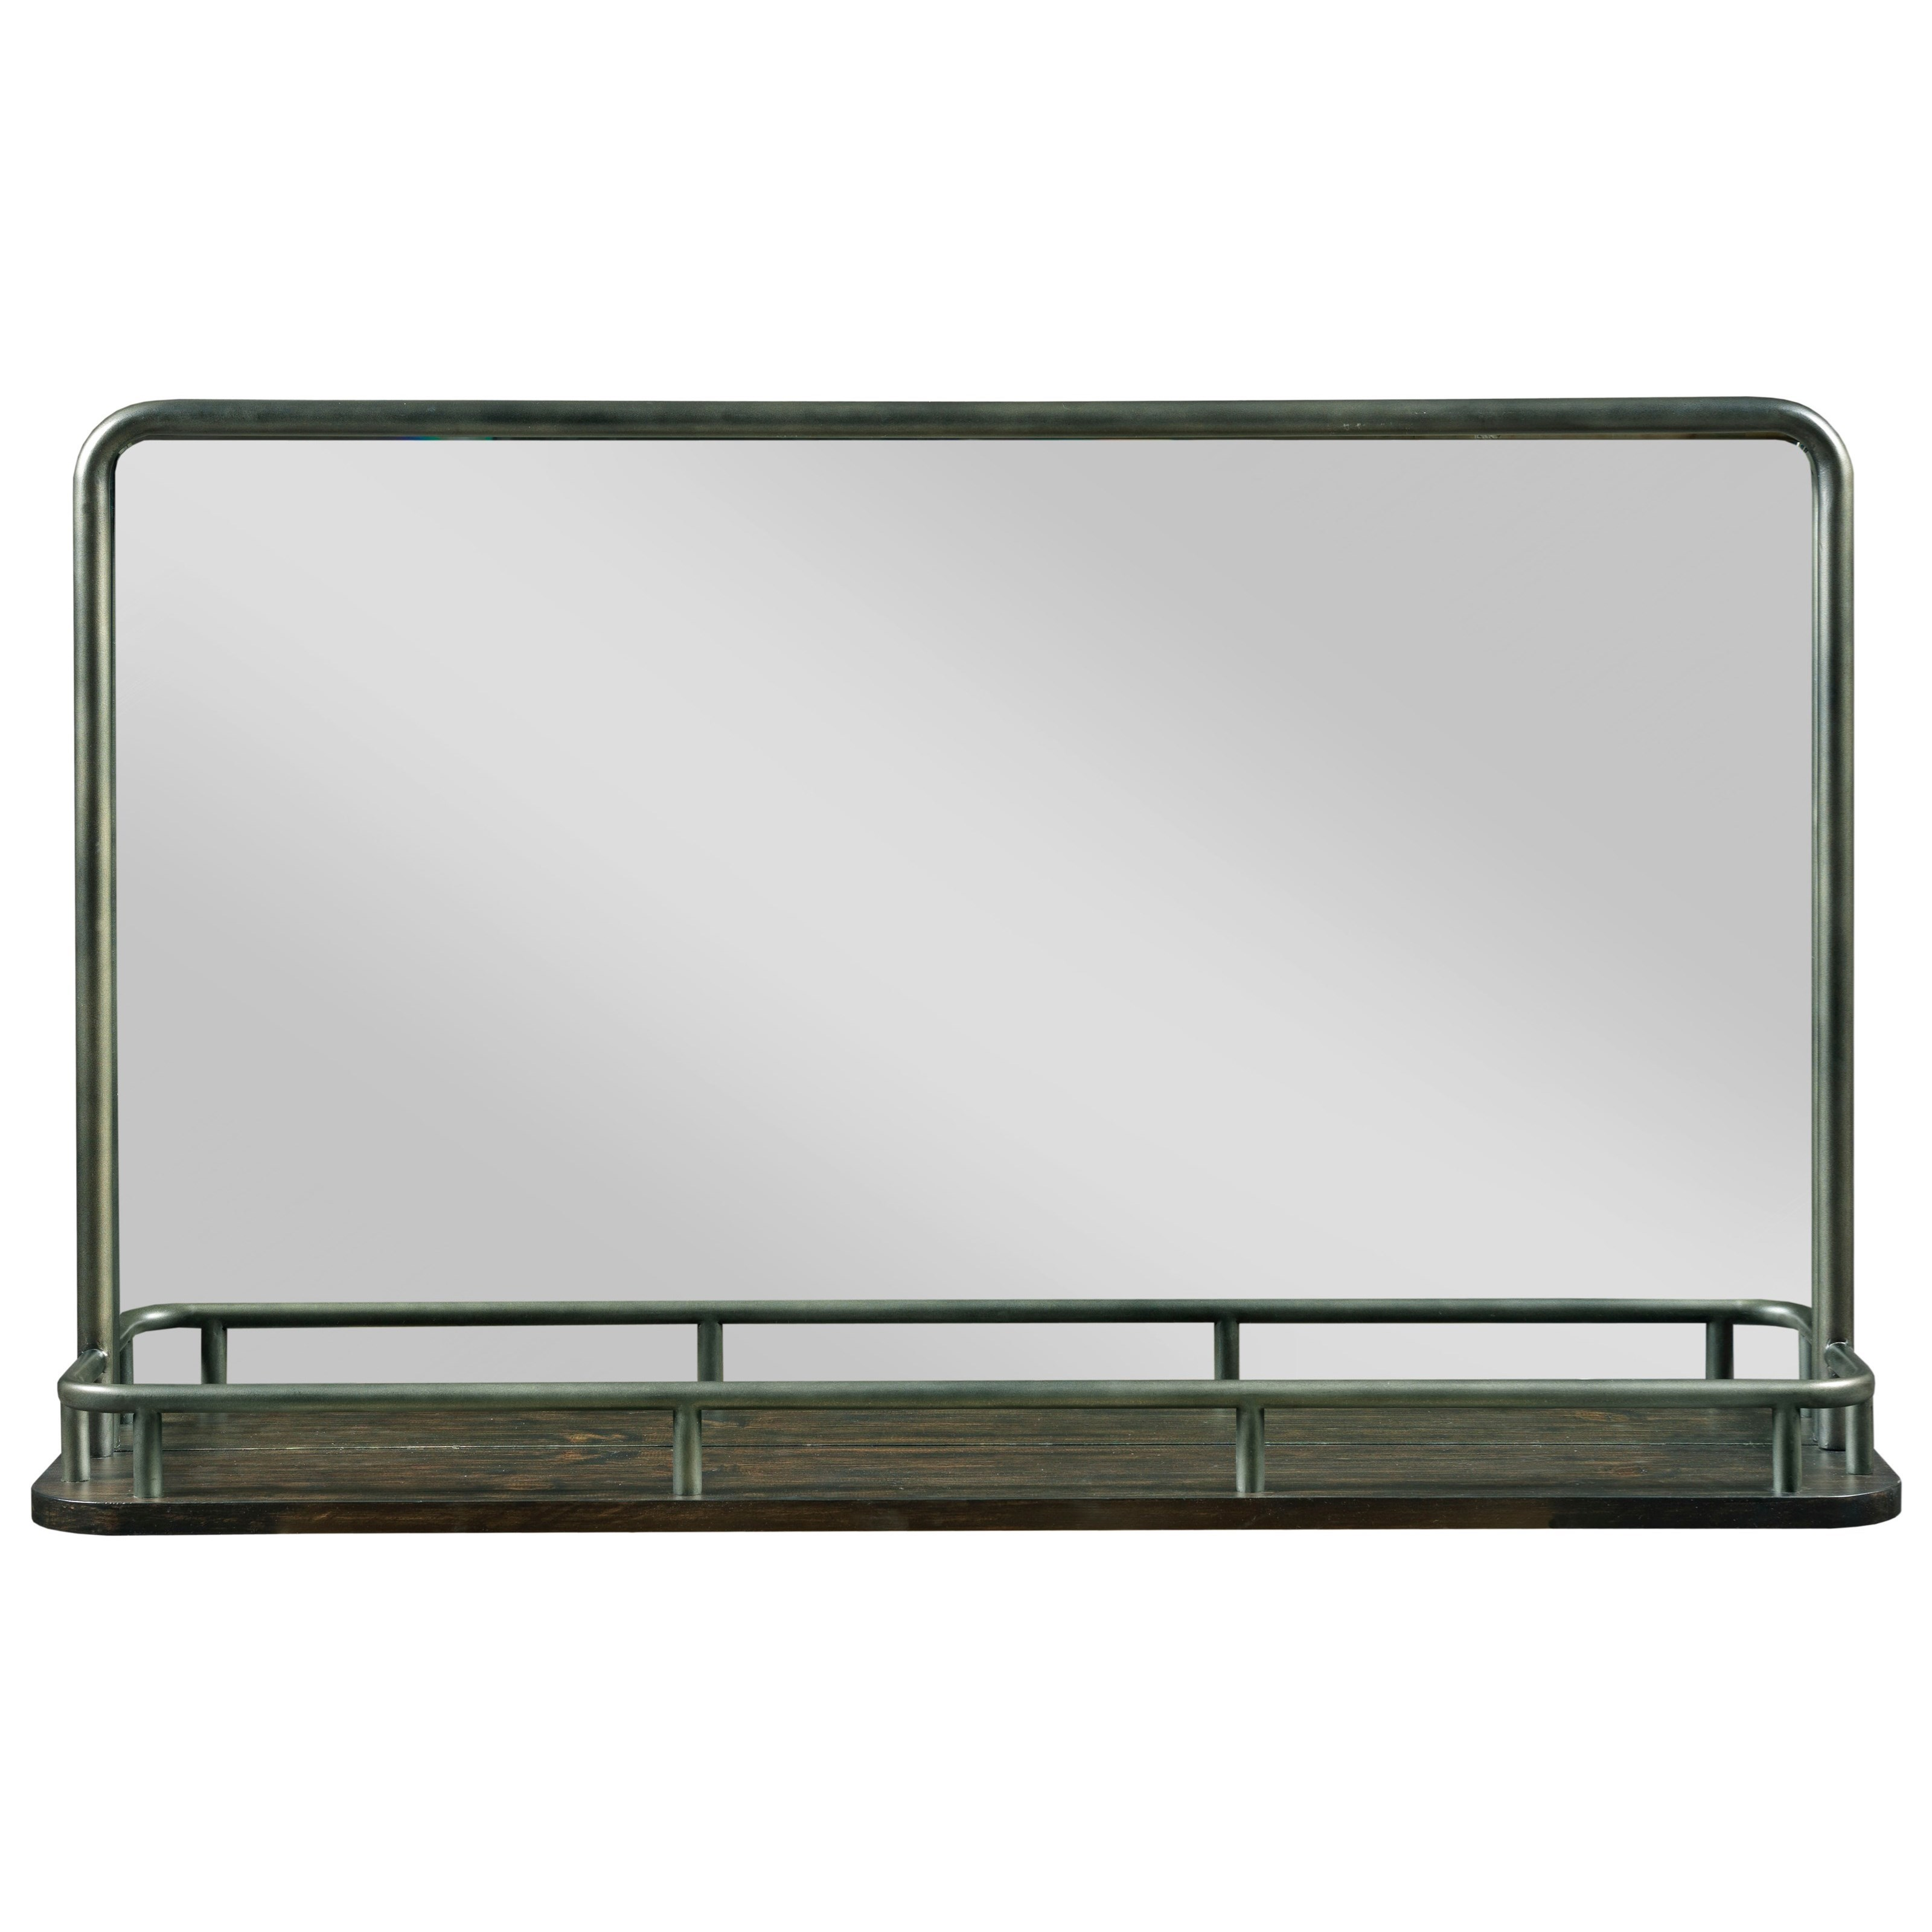 Rowan Lake Westwood Landscape Mirror                    by Kincaid Furniture at Walker's Furniture